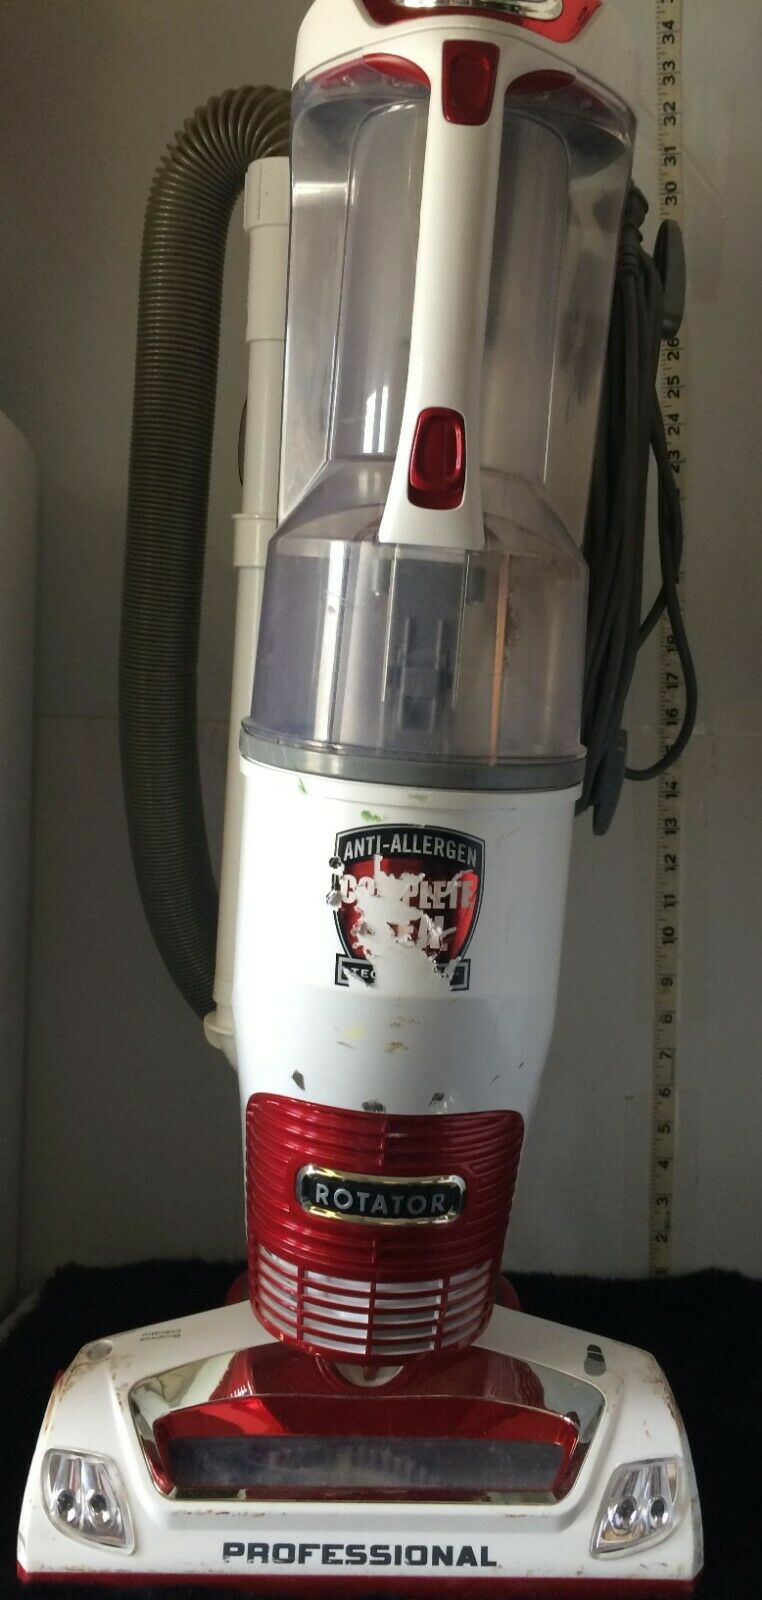 Shark redator Professional Vacuum Upright, used w o most accessory attachments